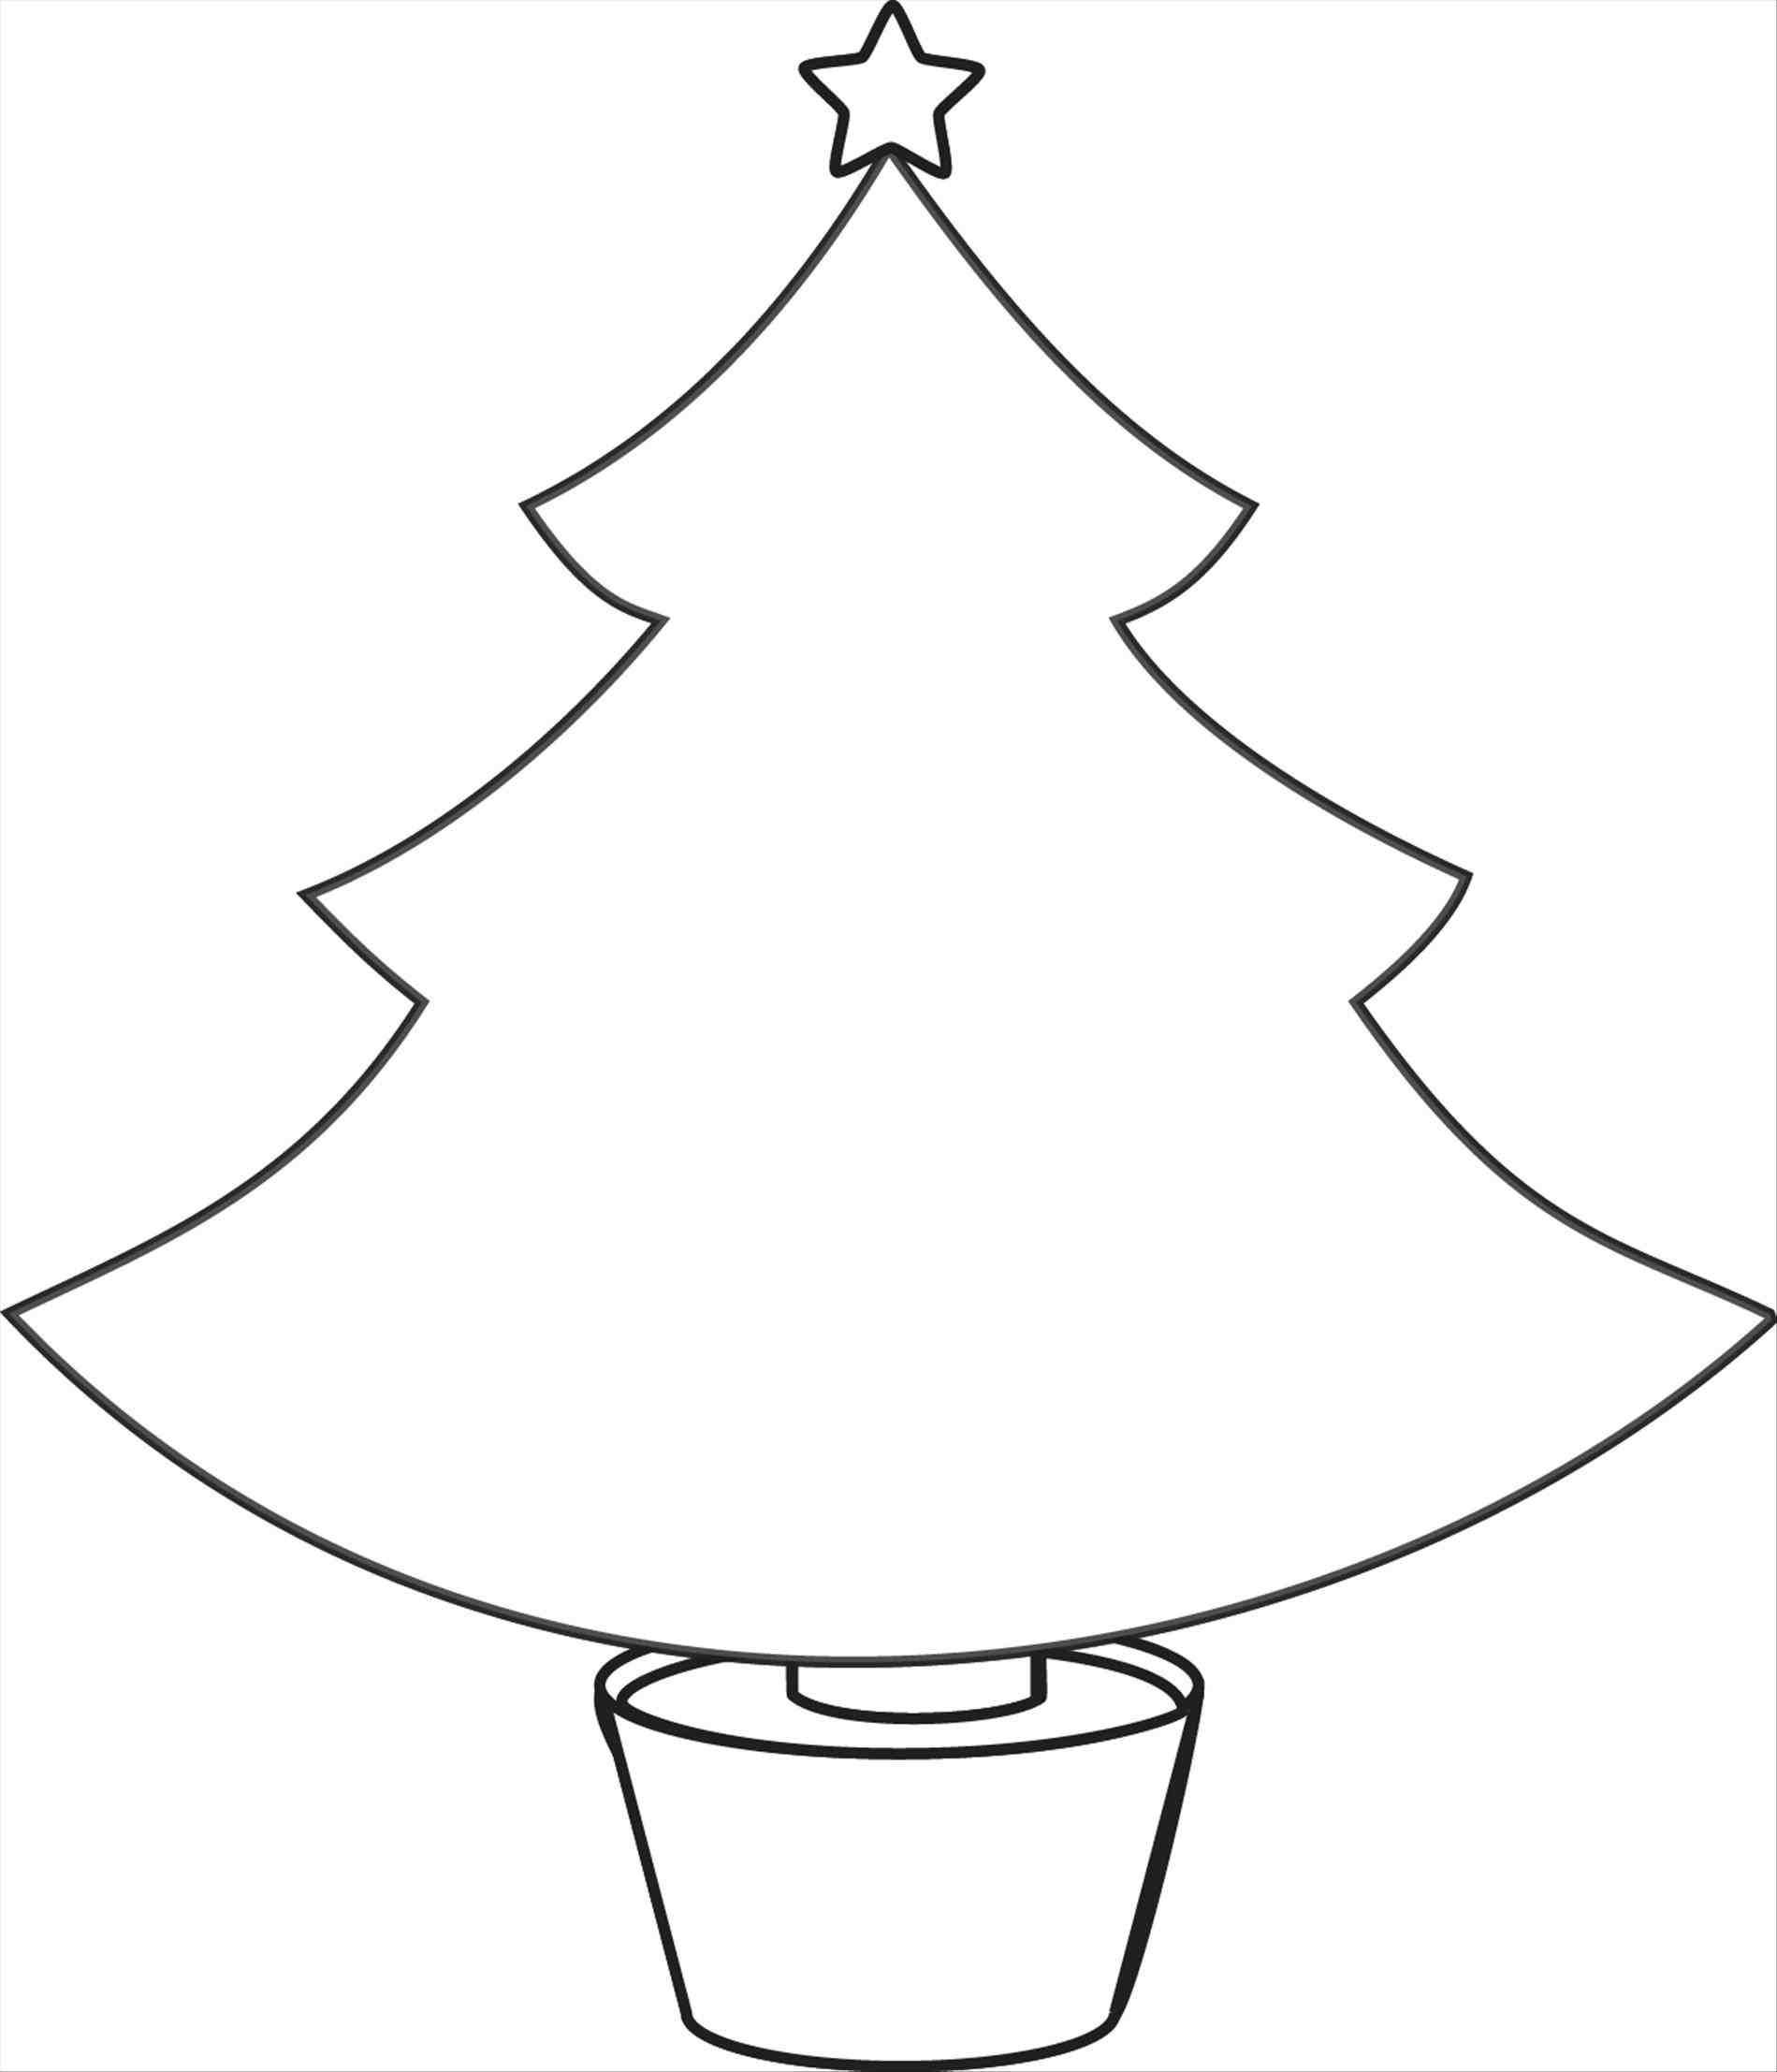 christmas tree coloring | Christmas tree template, Tree ...